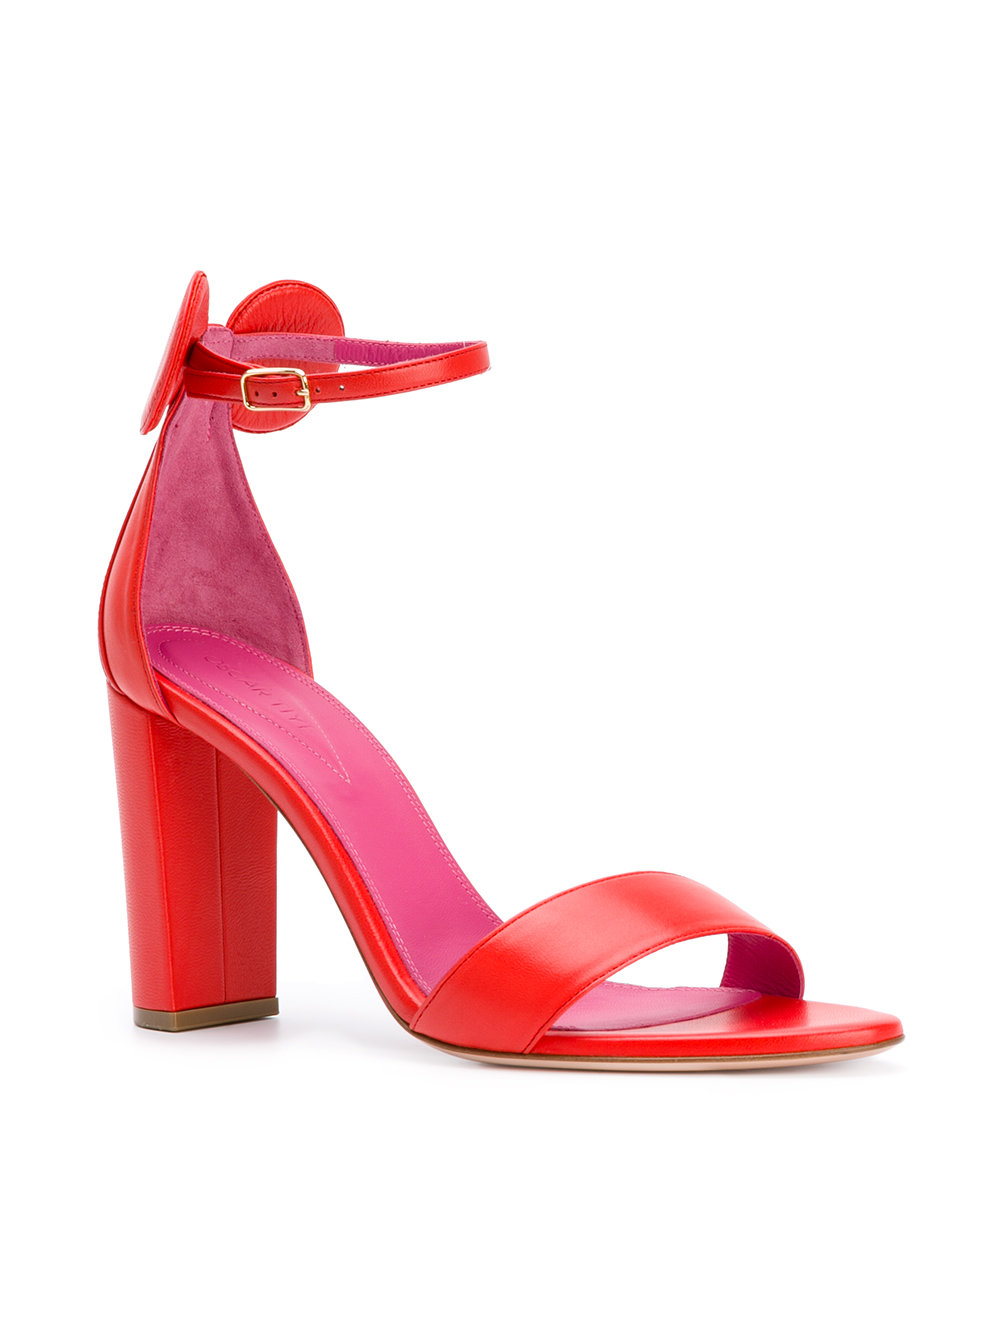 8 Mean reds minnie mouse heels